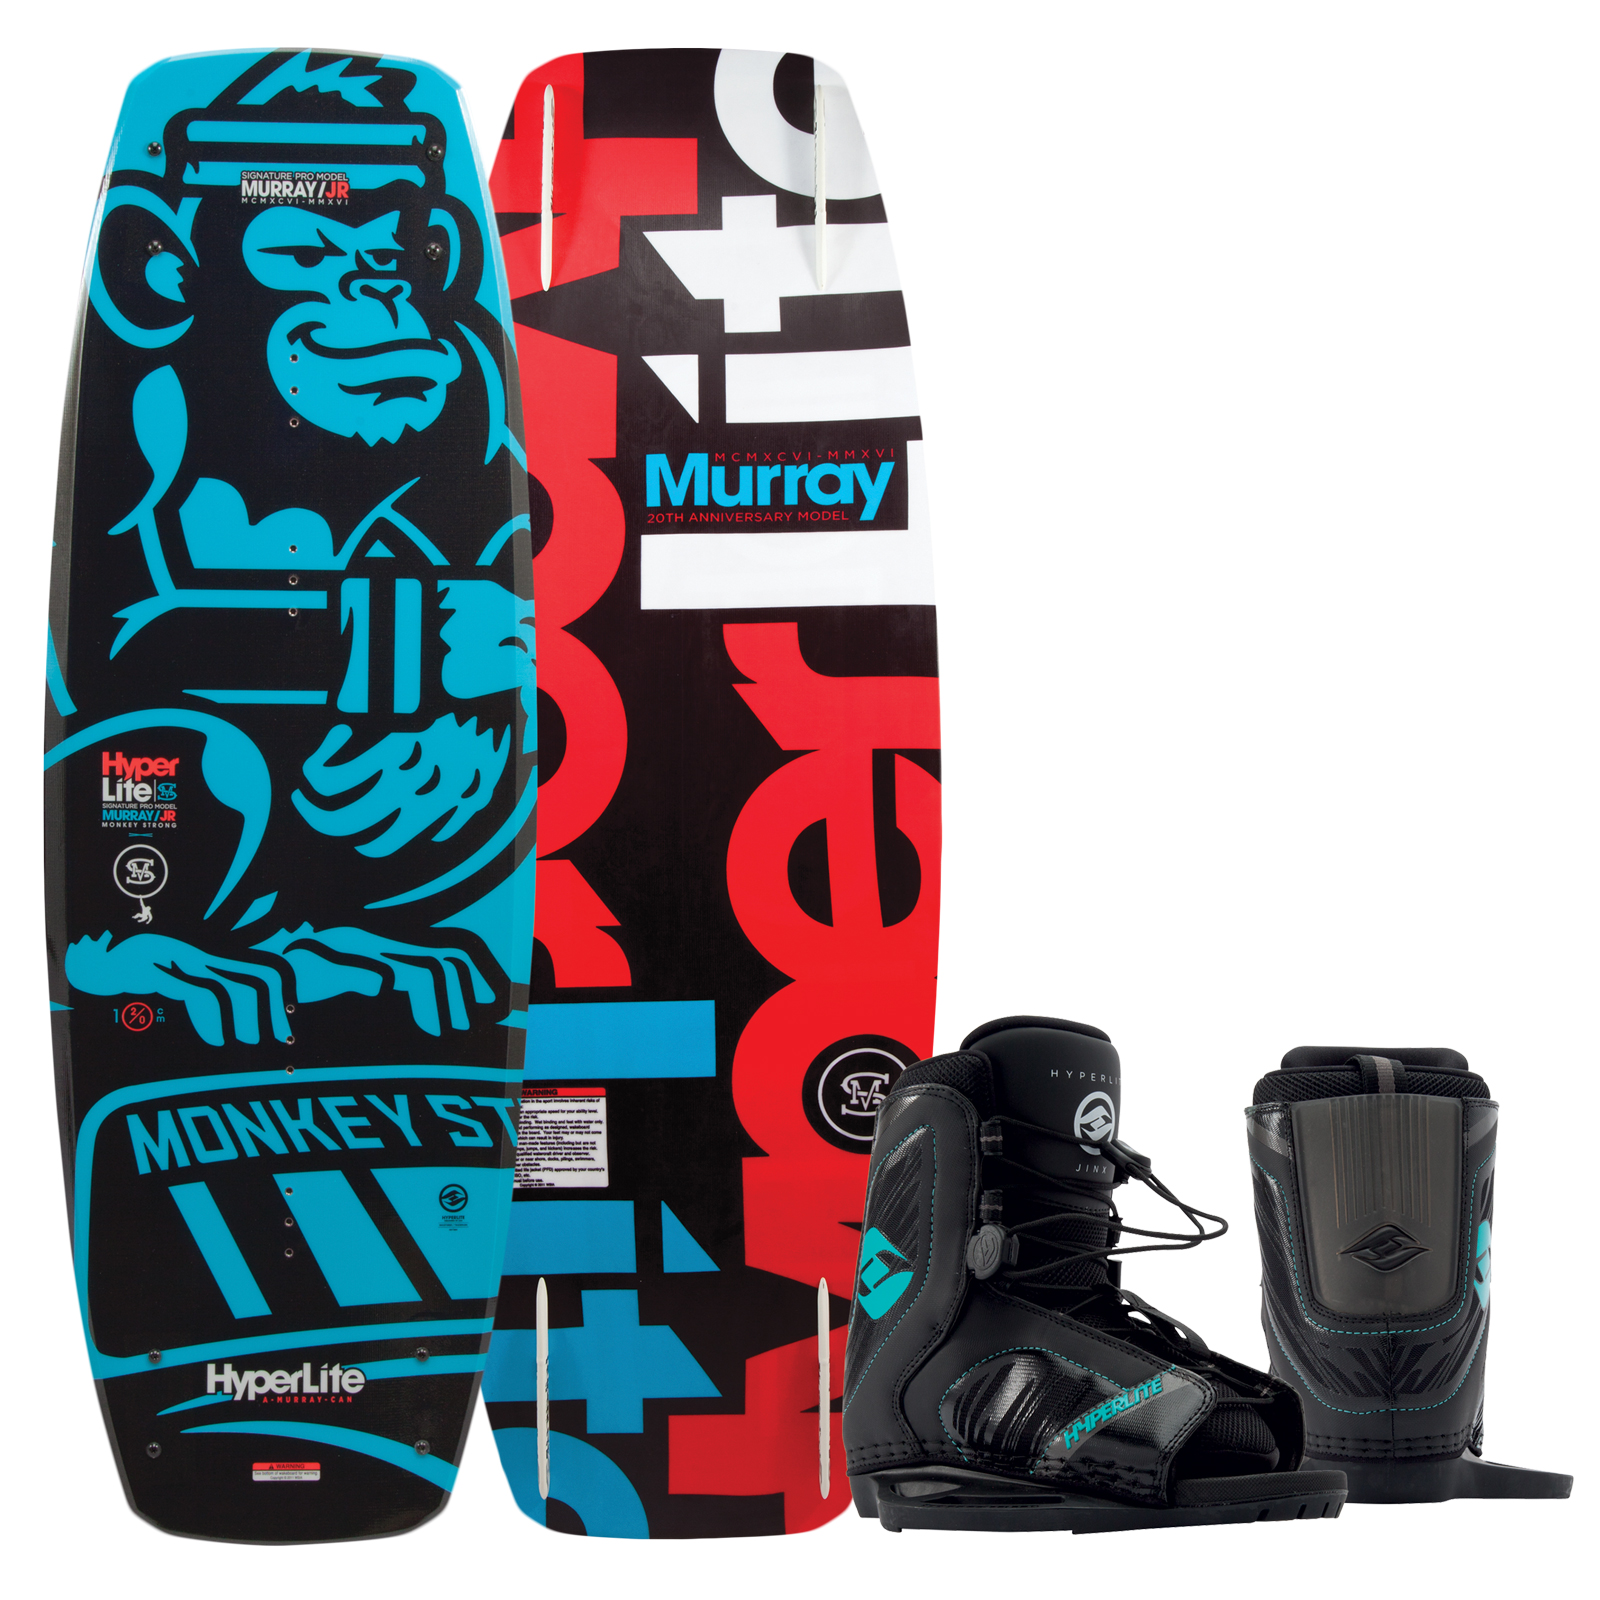 MURRAY 120 W/REMIX BOOTS EU 36-41/US 4-8 PACKAGE HYPERLITE 2017